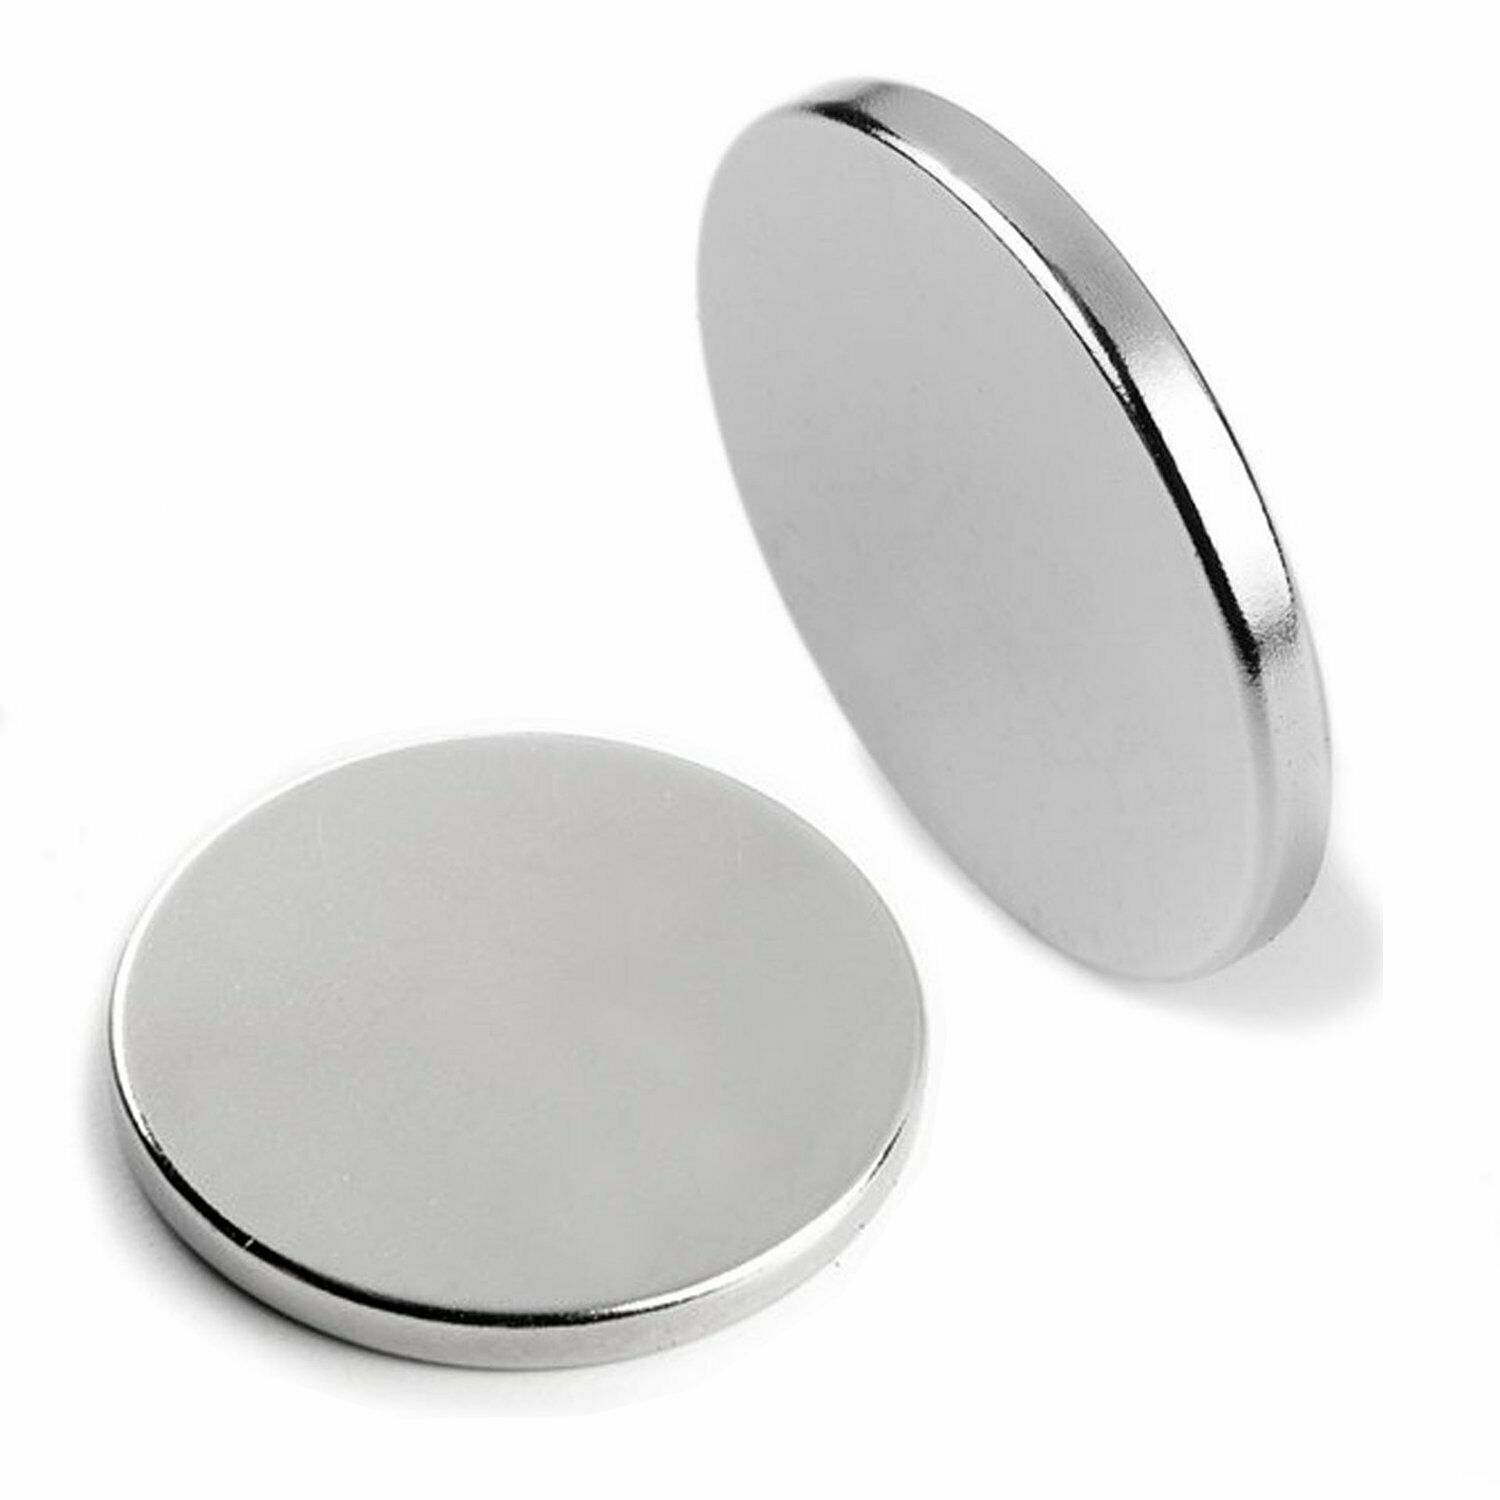 Scientific and Office Magnets DIYMAG Ceramic Disc Magnets 68 Packs with Double-Sided Adhesive Ceramic Industrial Magnets Building Craft DIY Perfect for Fridge